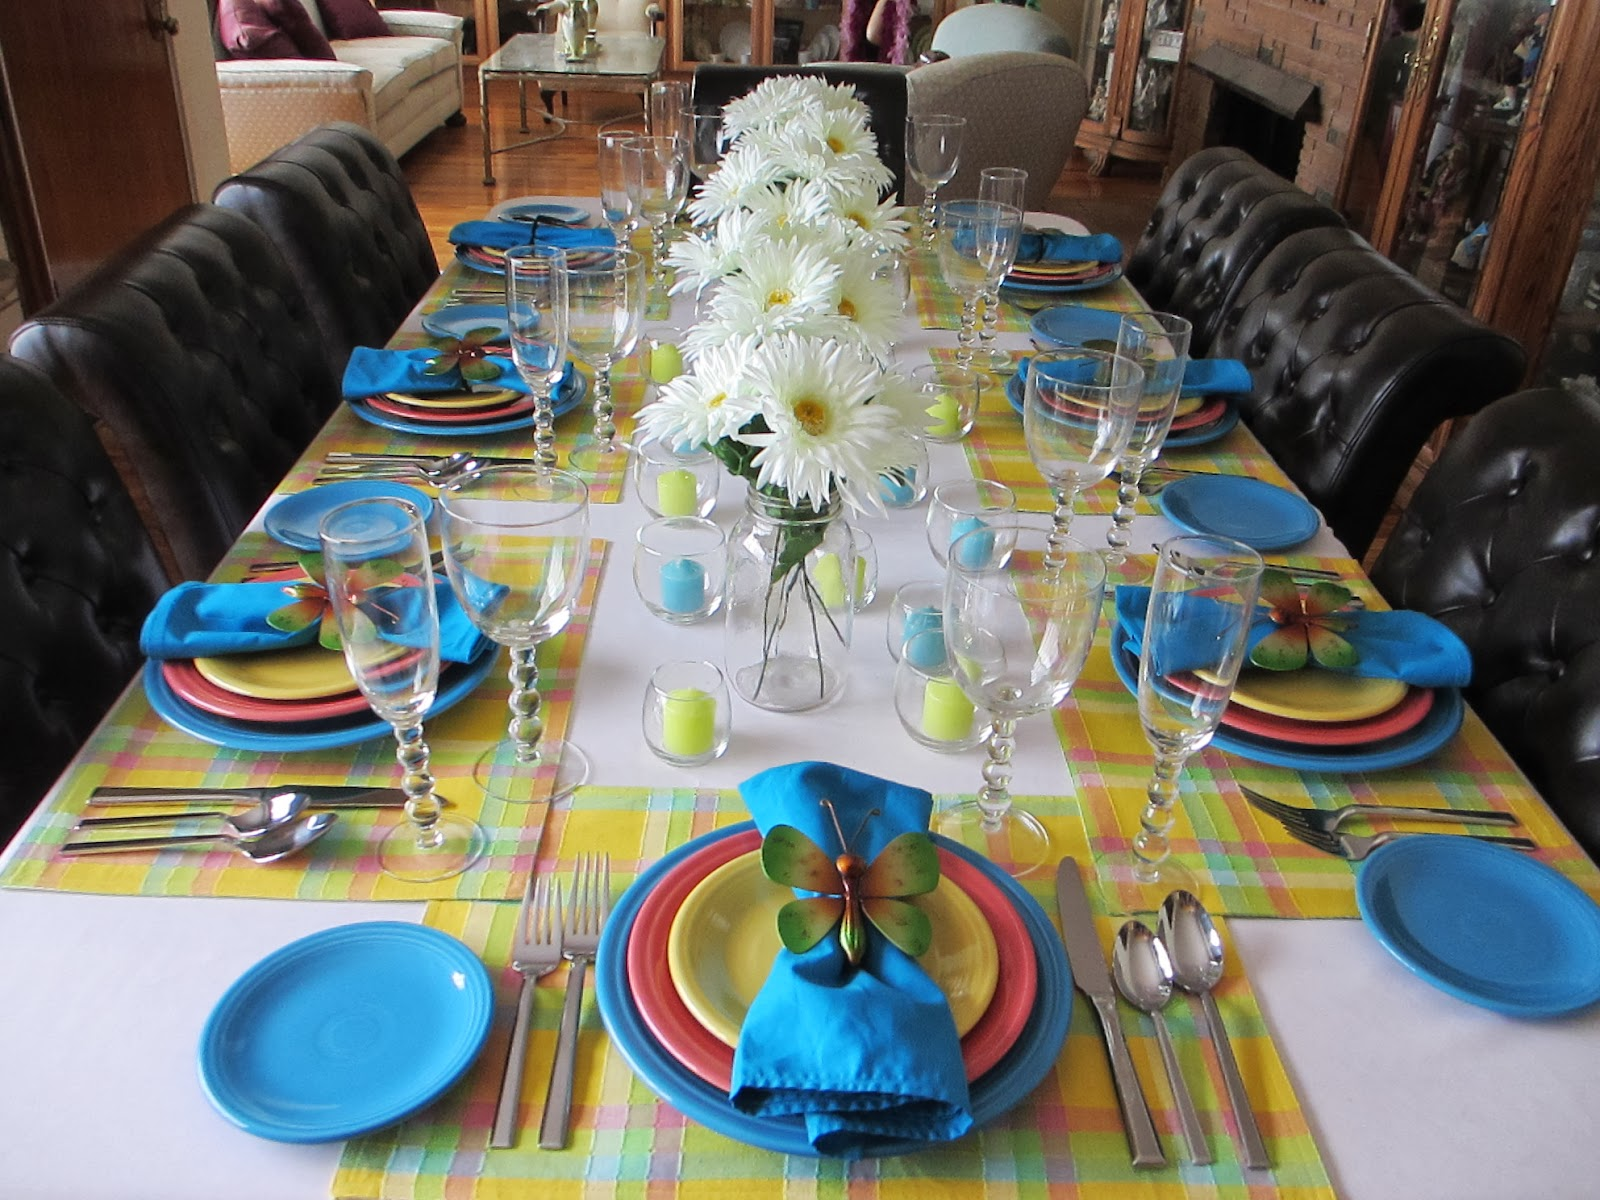 Over view of the table & The Welcomed Guest: Summertime Fiesta Dinnerware Tablescape